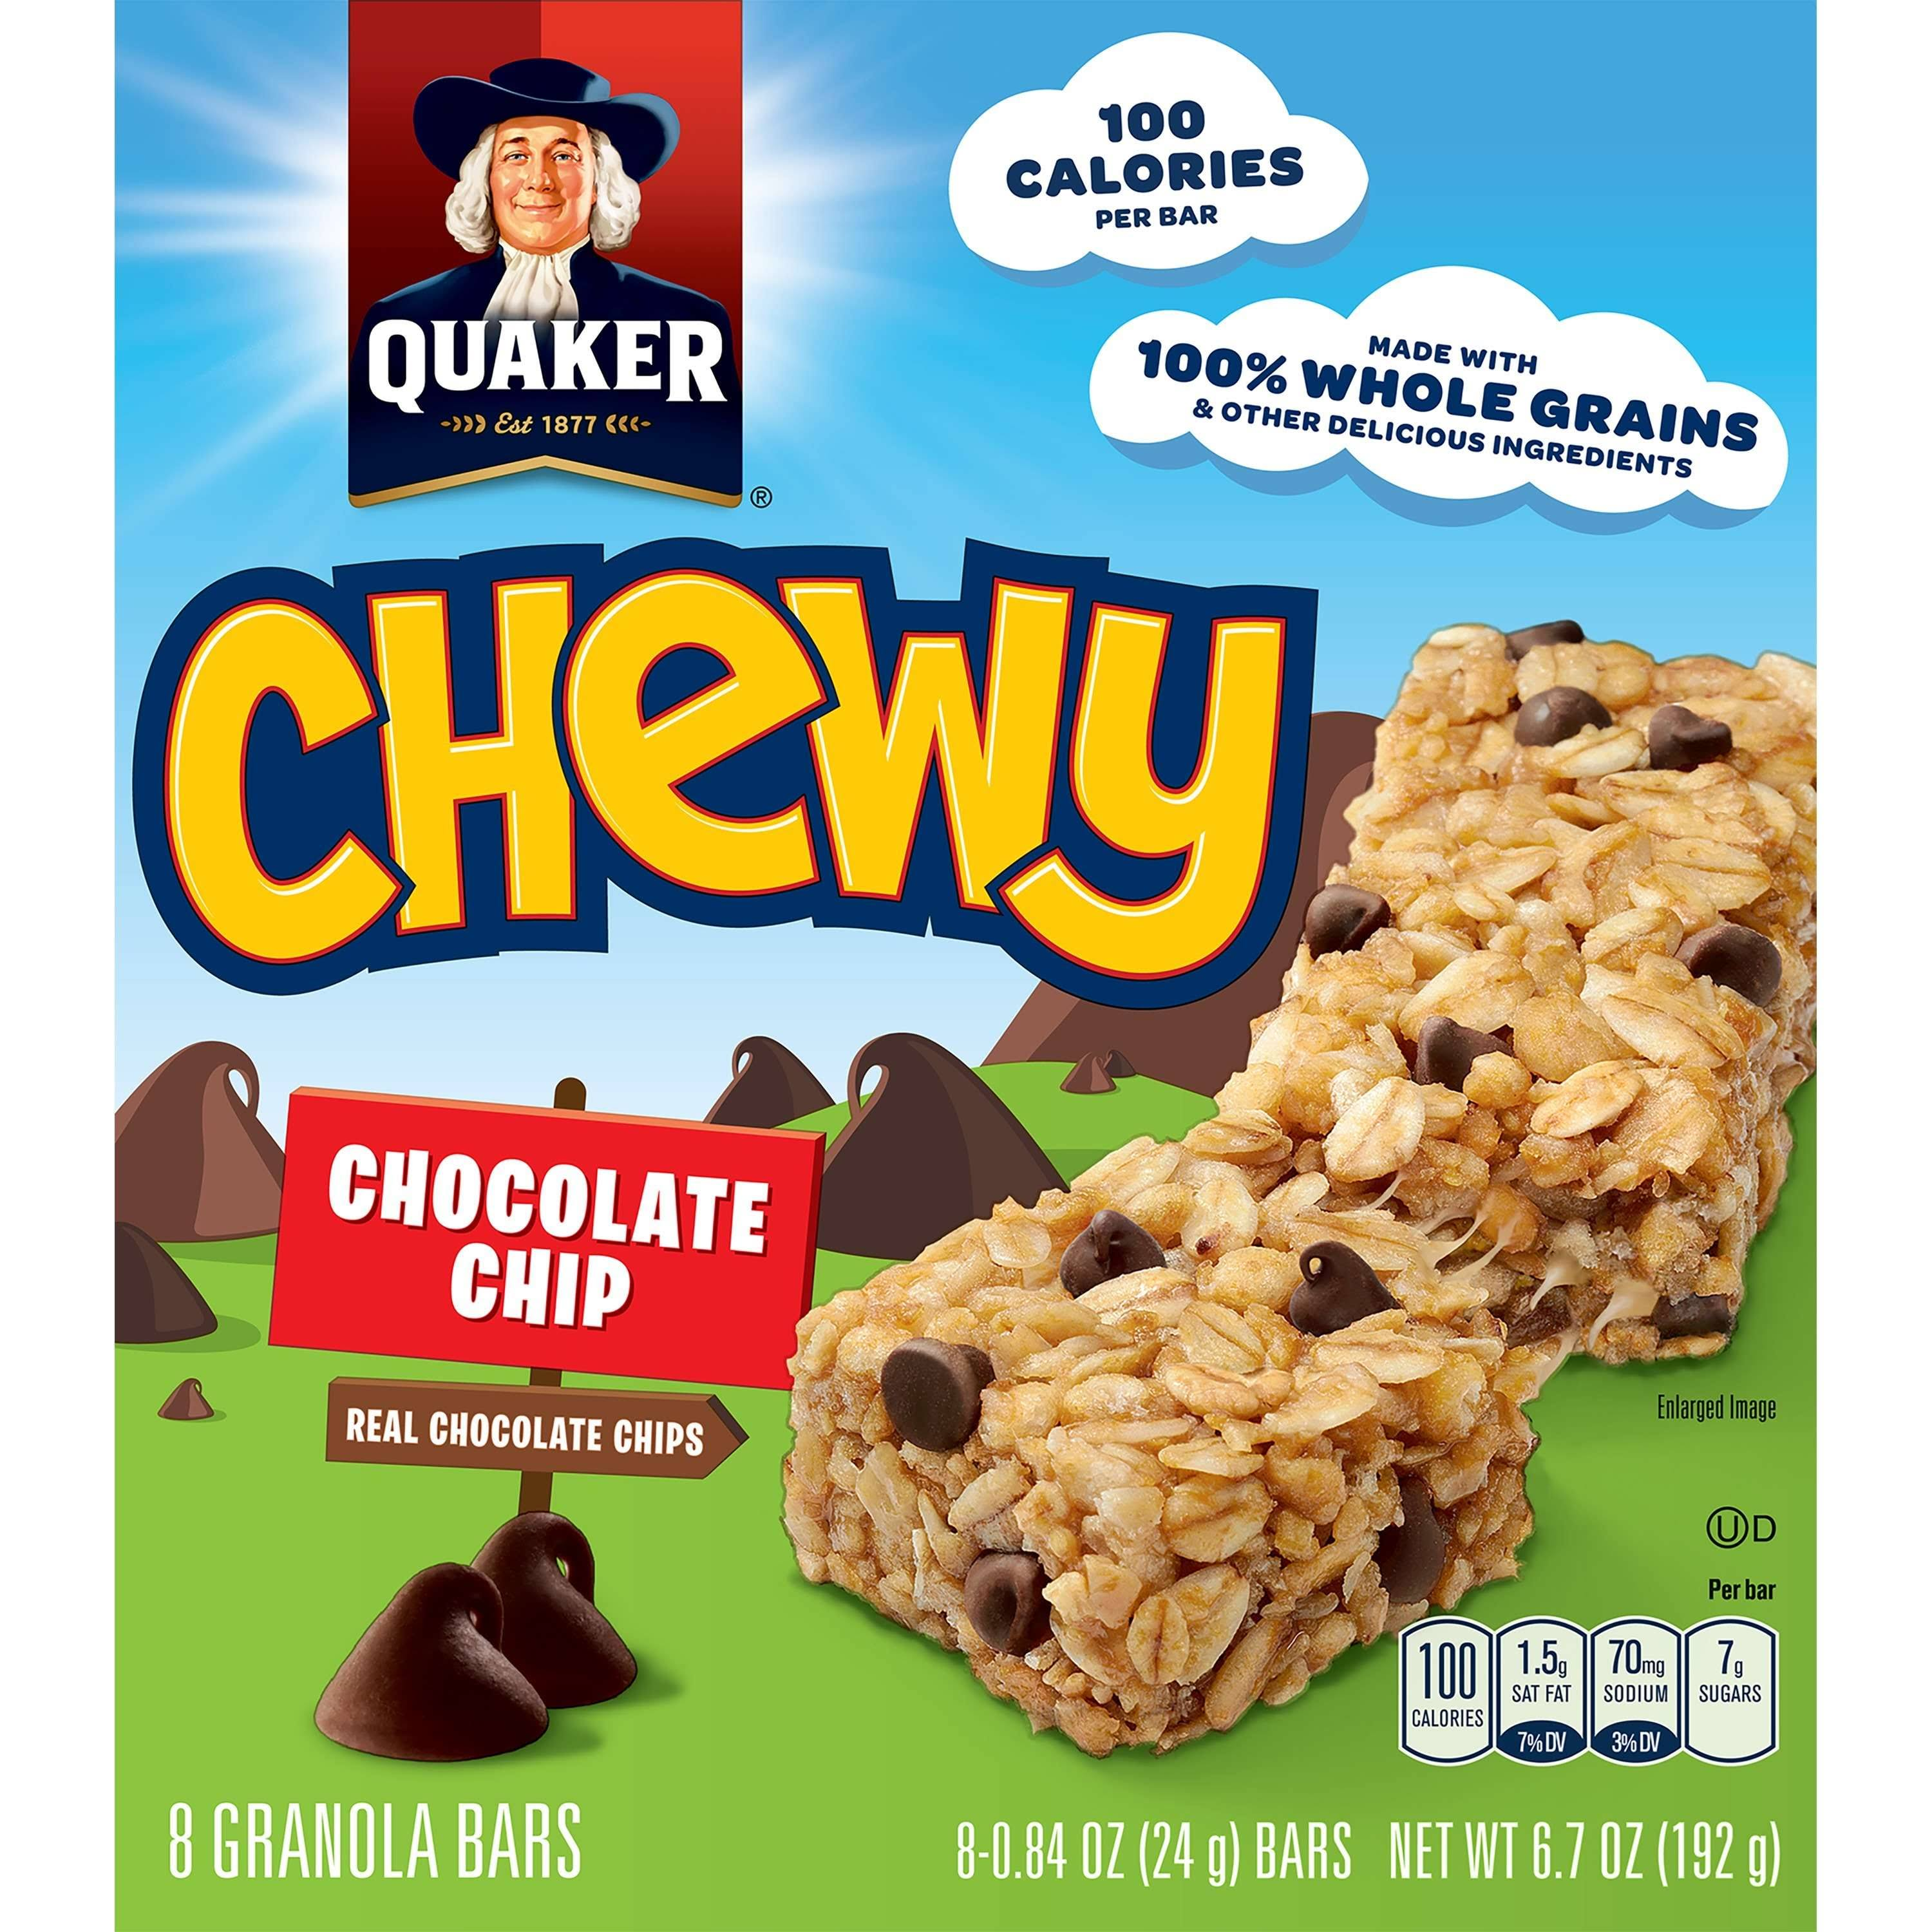 Quaker Chewy Granola Bar - 8 Granola Bars, Chocolate Chip, 192g